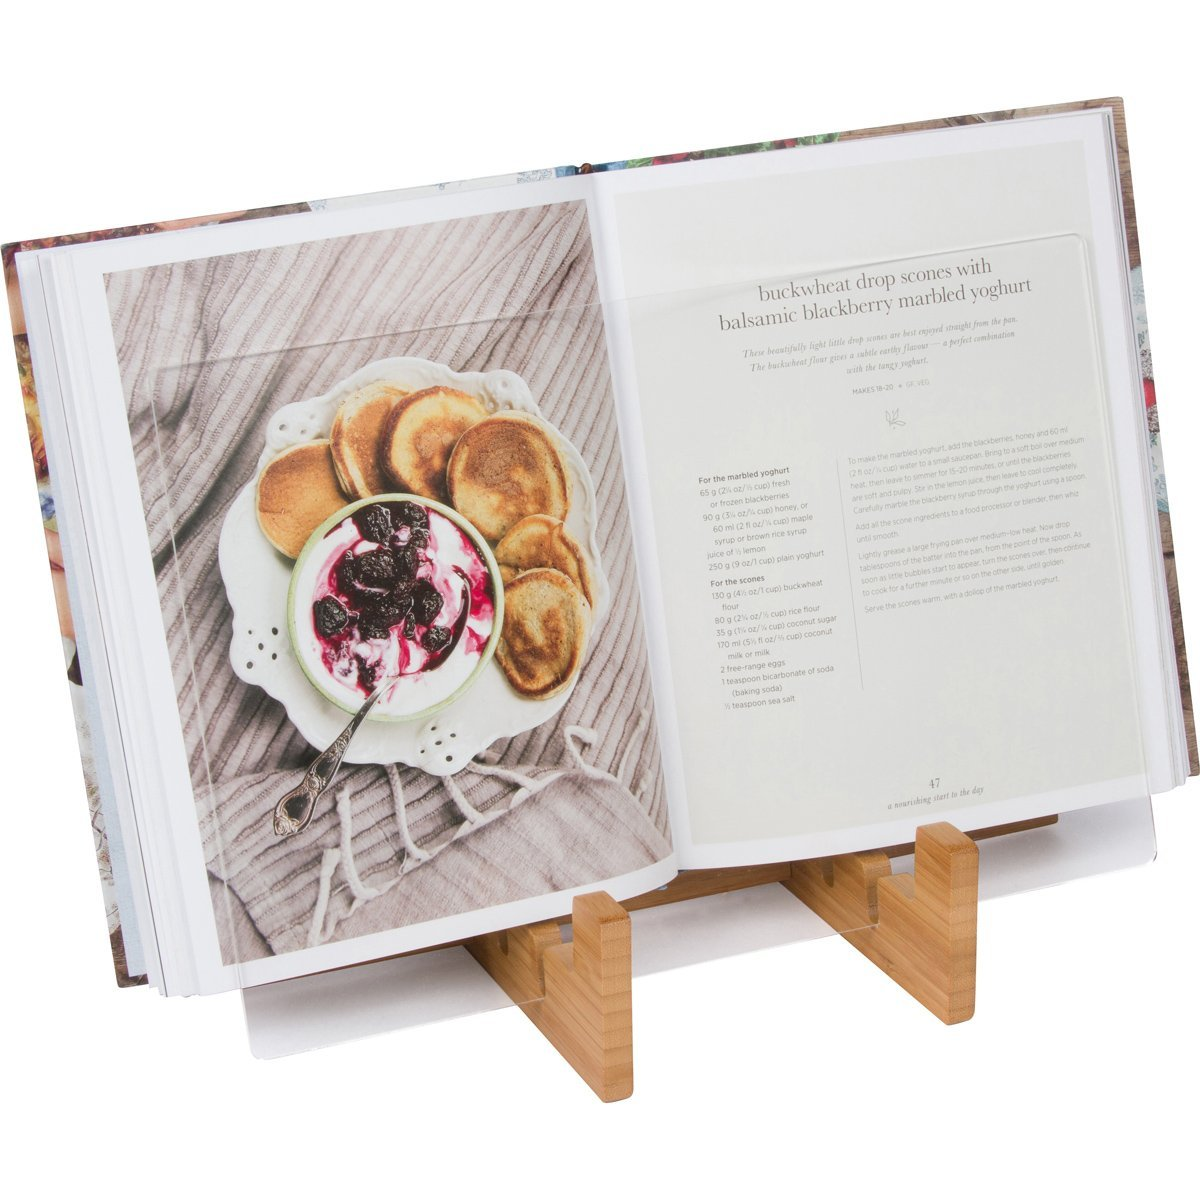 KitchenWarePlus Recipe Book Holder - Bamboo Cookbook Stand for iPad or Tablet for the Kitchen with Protective Splash Guard. Easy Clean Book Stand. by Kitchenware Plus